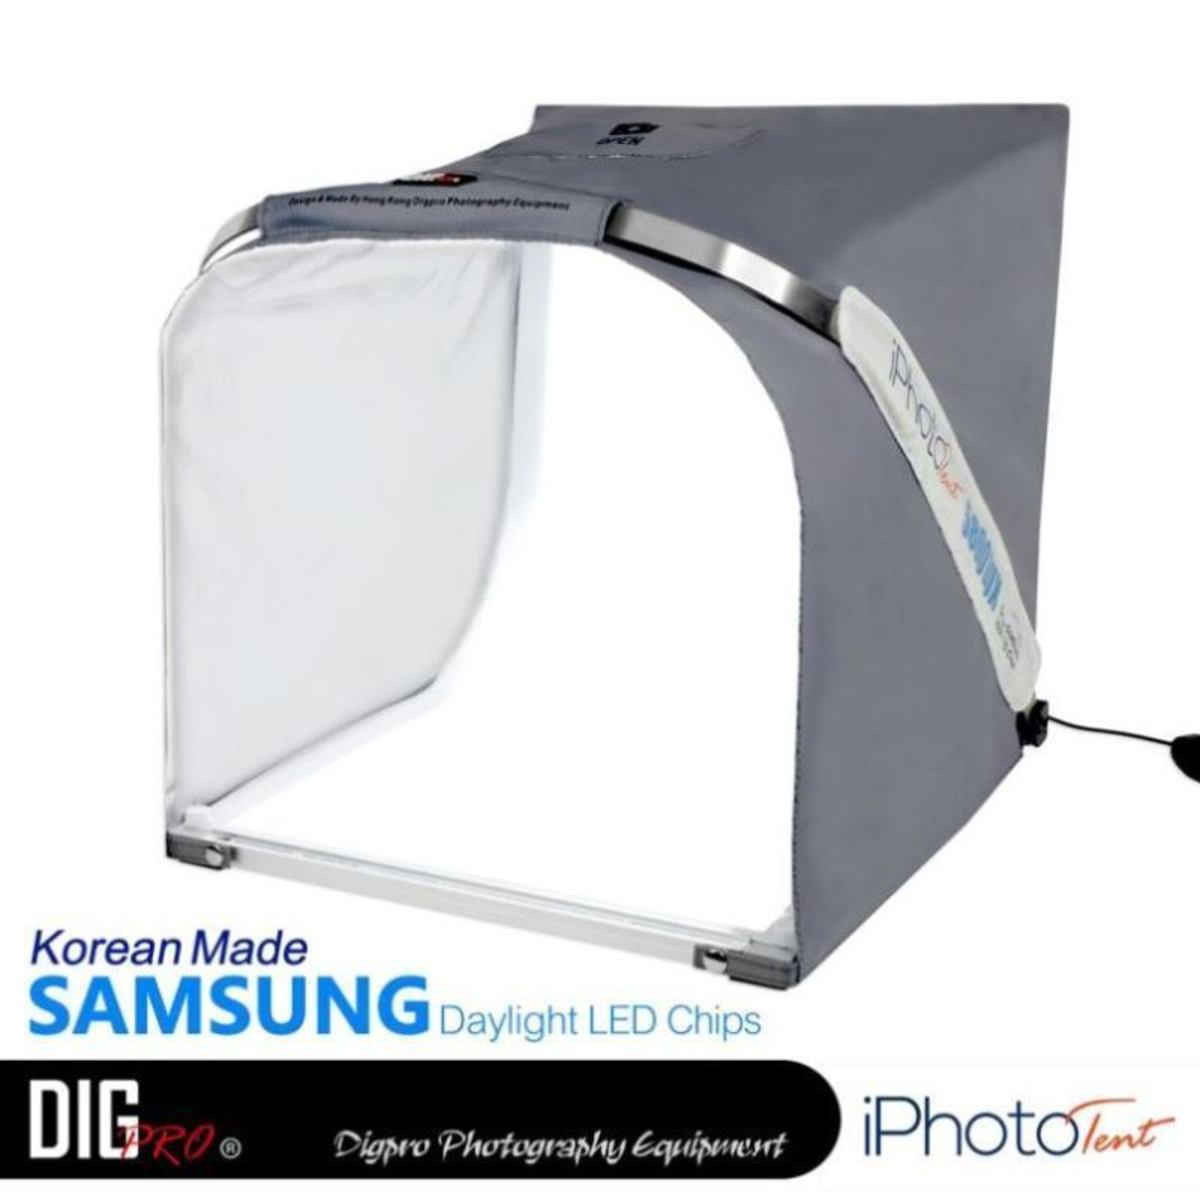 Digpro i Photo Tent: 40cm SAMSUNG LED Light photography Studio Cube Lighting Kit